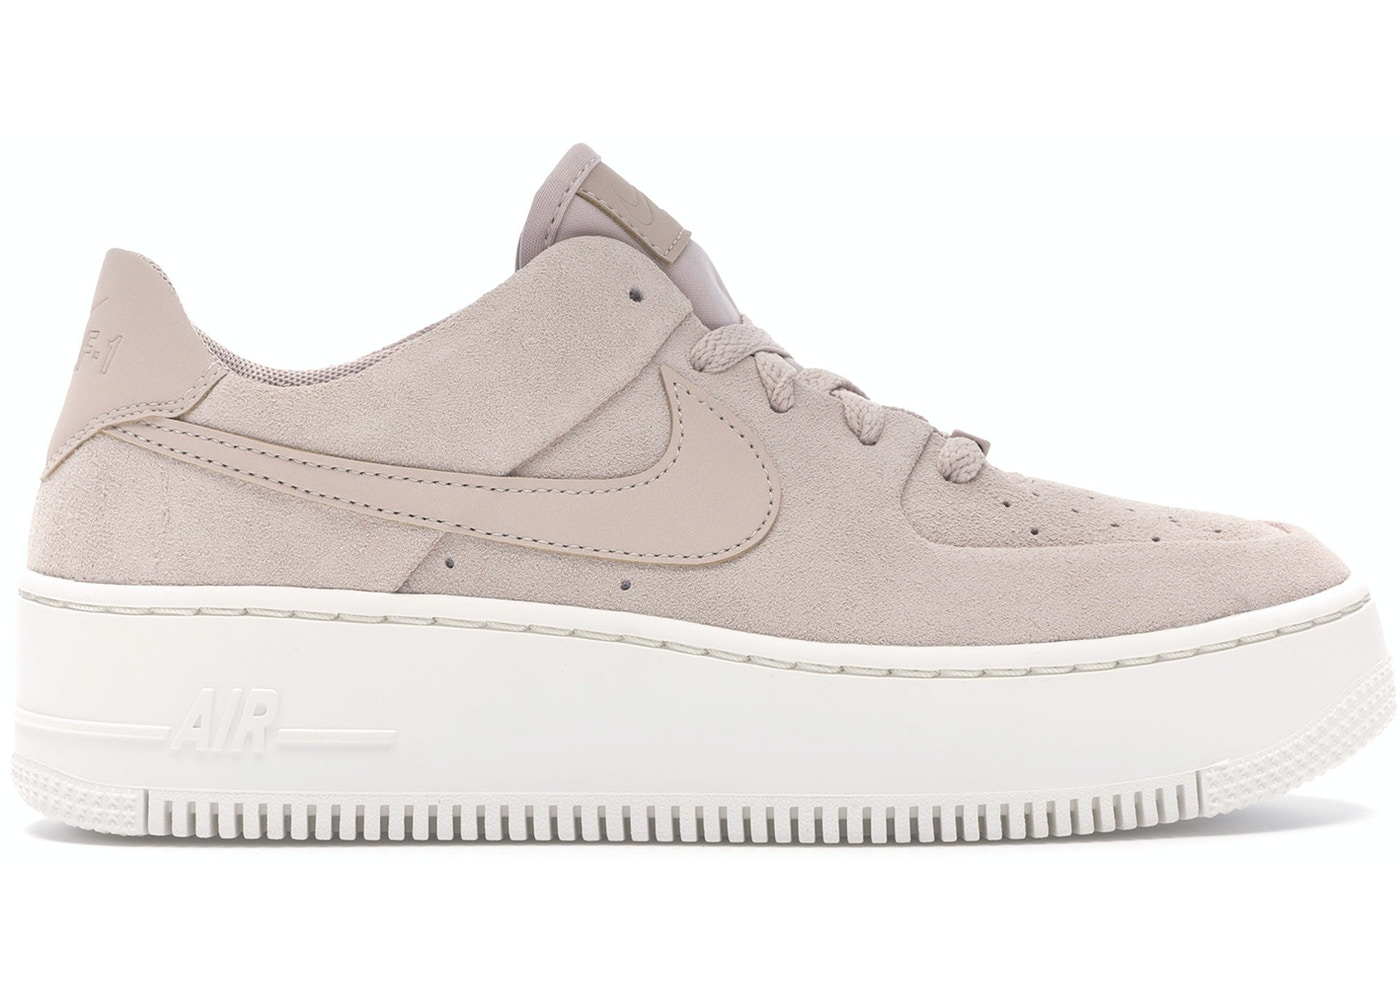 size 40 8e3e9 39643 Air Force 1 Sage Low Particle Beige (W) - AR5339-201